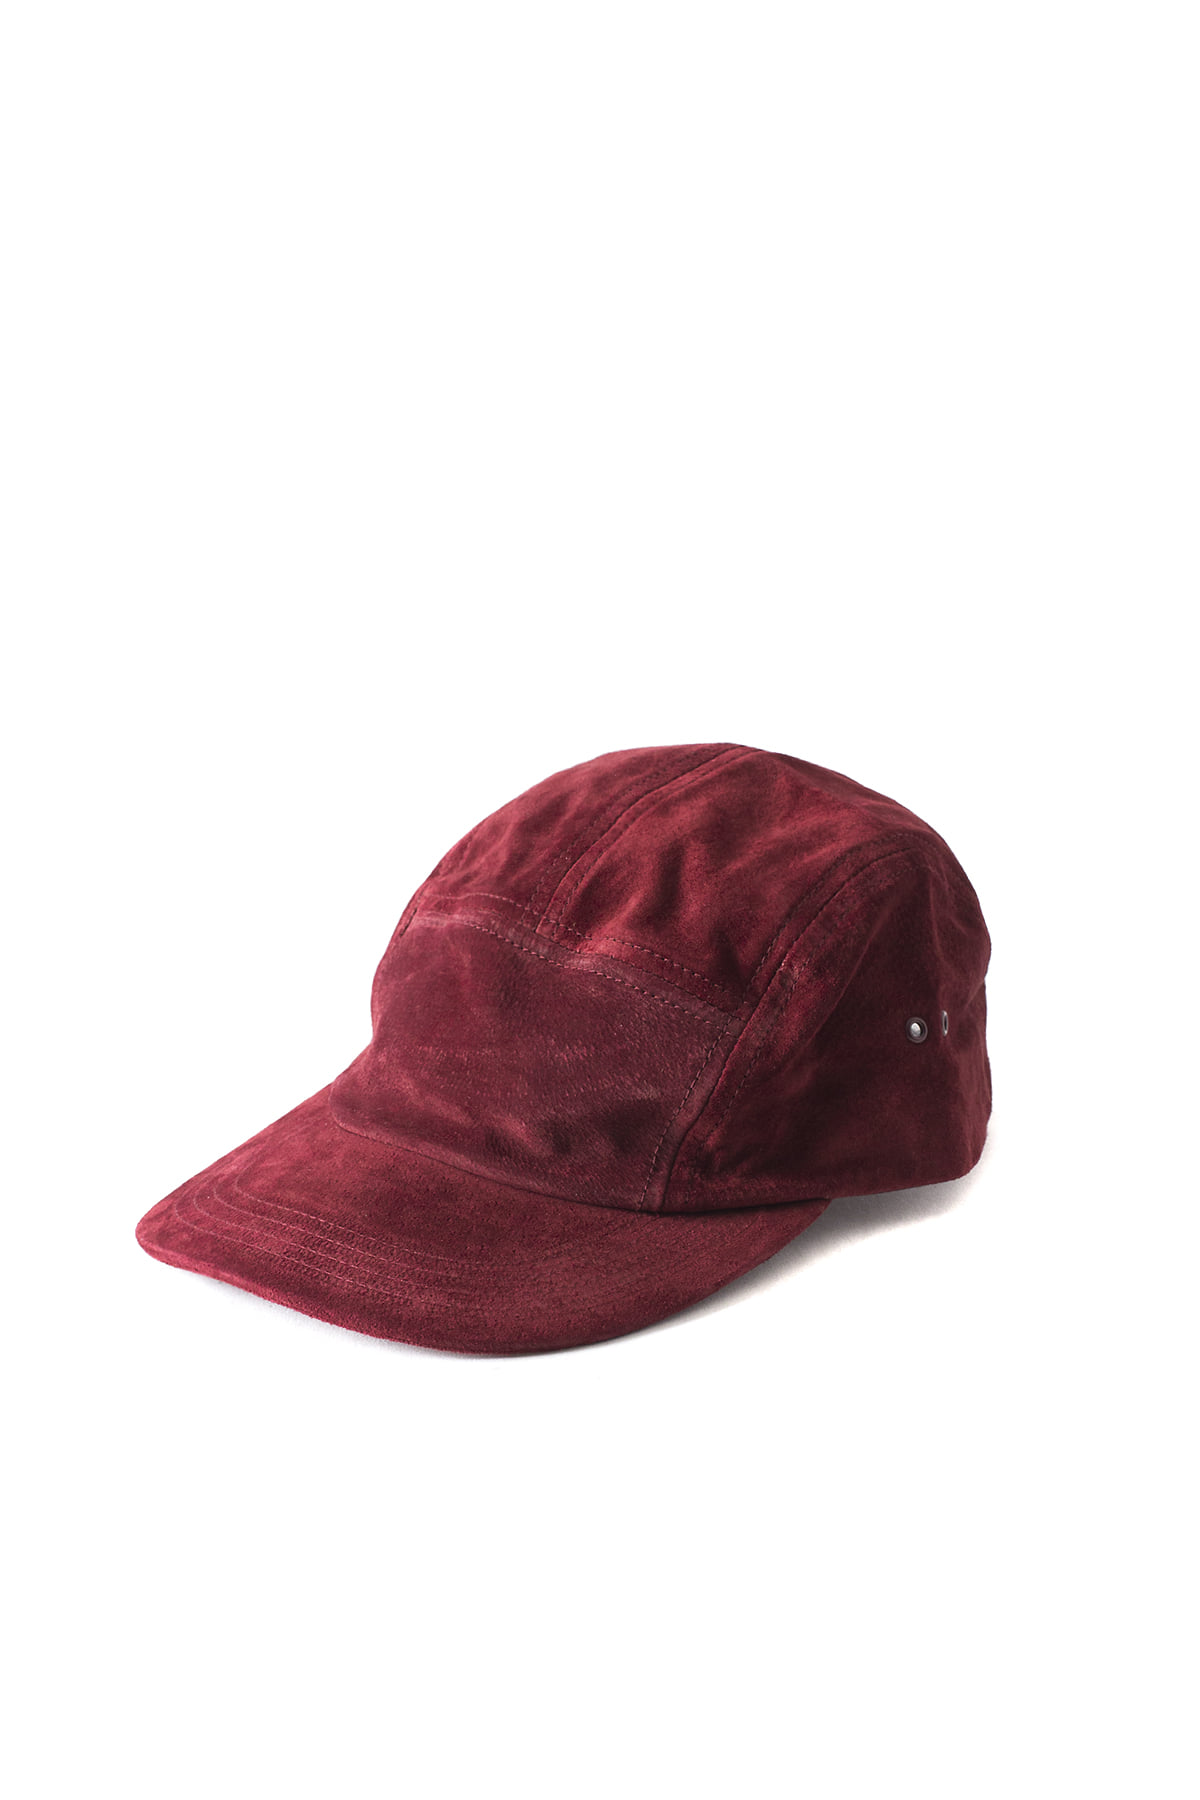 Hender Scheme : Water Proof Pig Jet Cap (Burgundy)